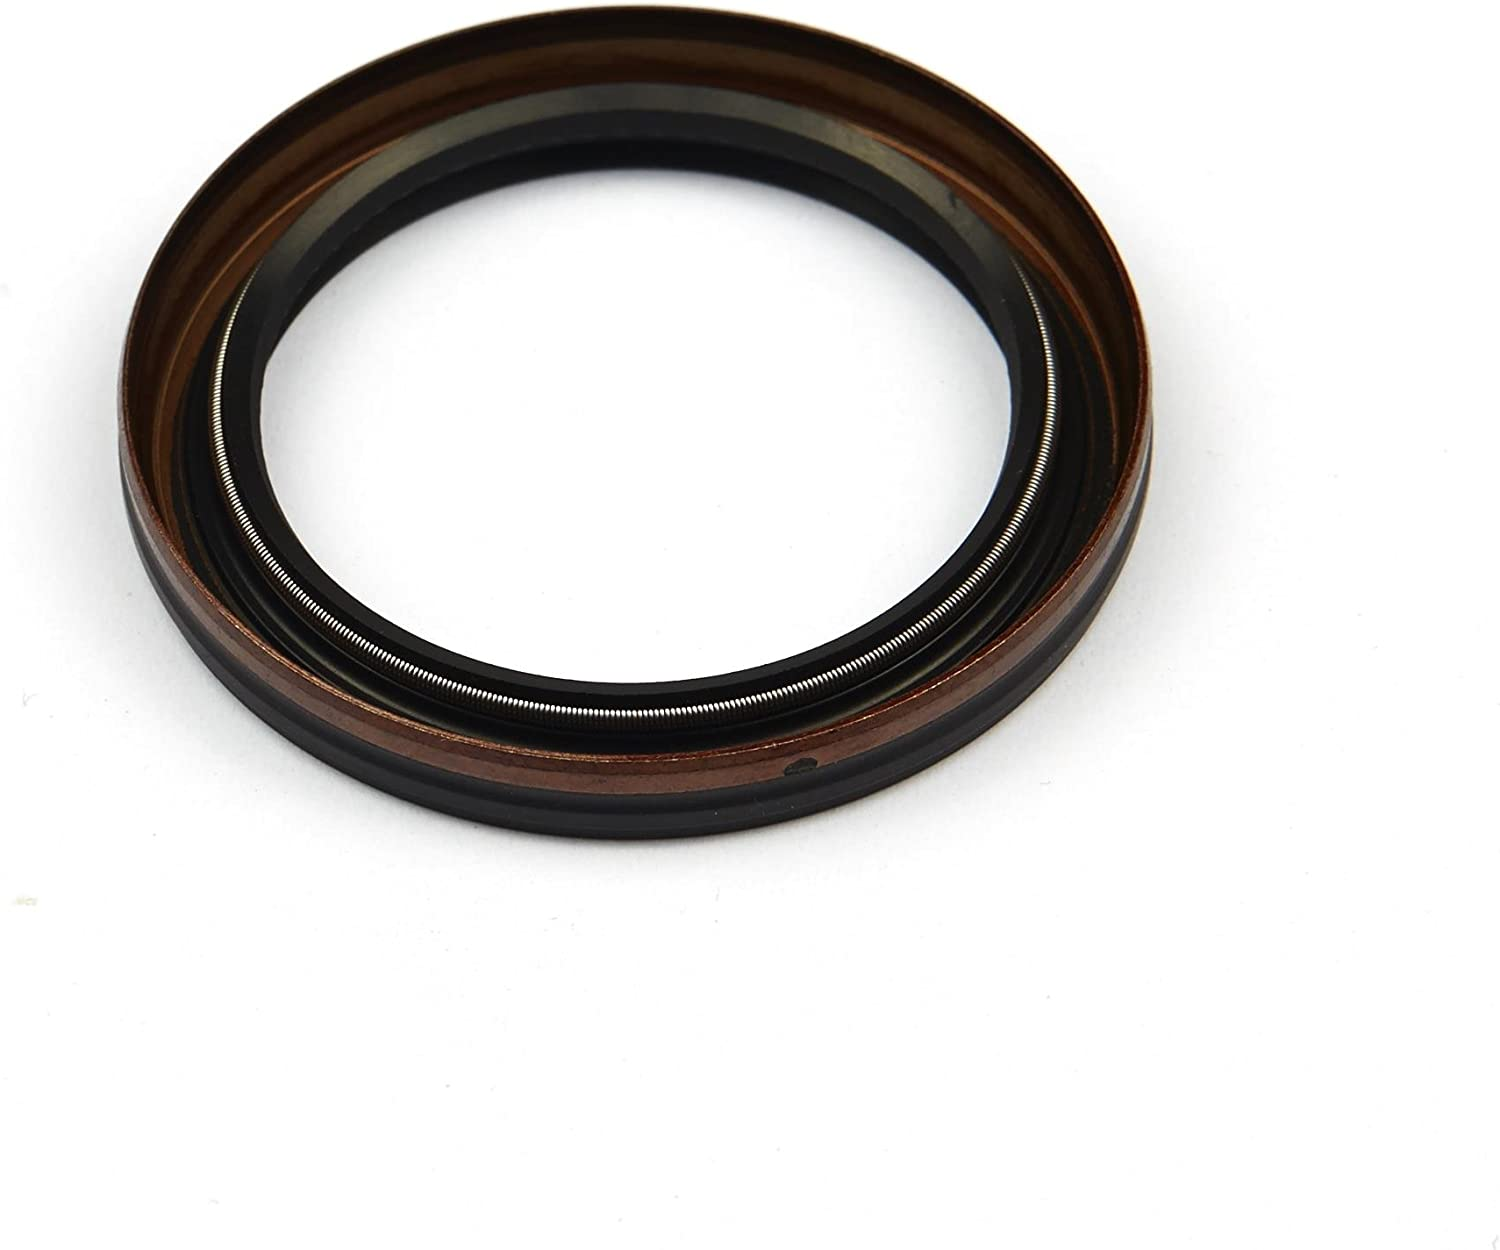 Briggs & Stratton 795387 Oil Seal Replaces 791892/690947/499145 : Lawn Mower Tune Up Kits : Garden & Outdoor